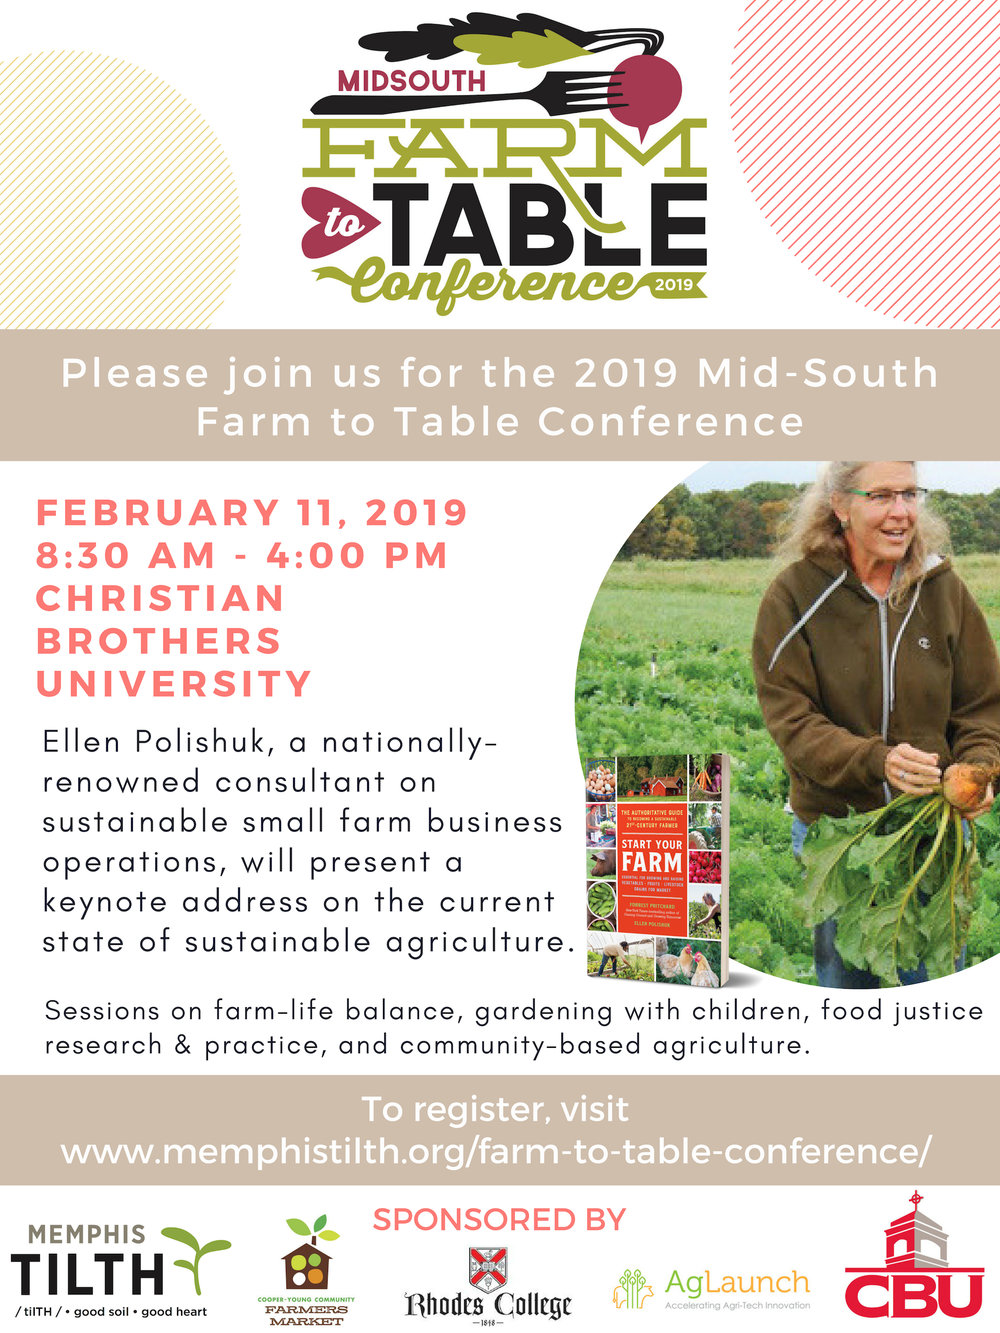 Farm to table conference poster-11.jpg